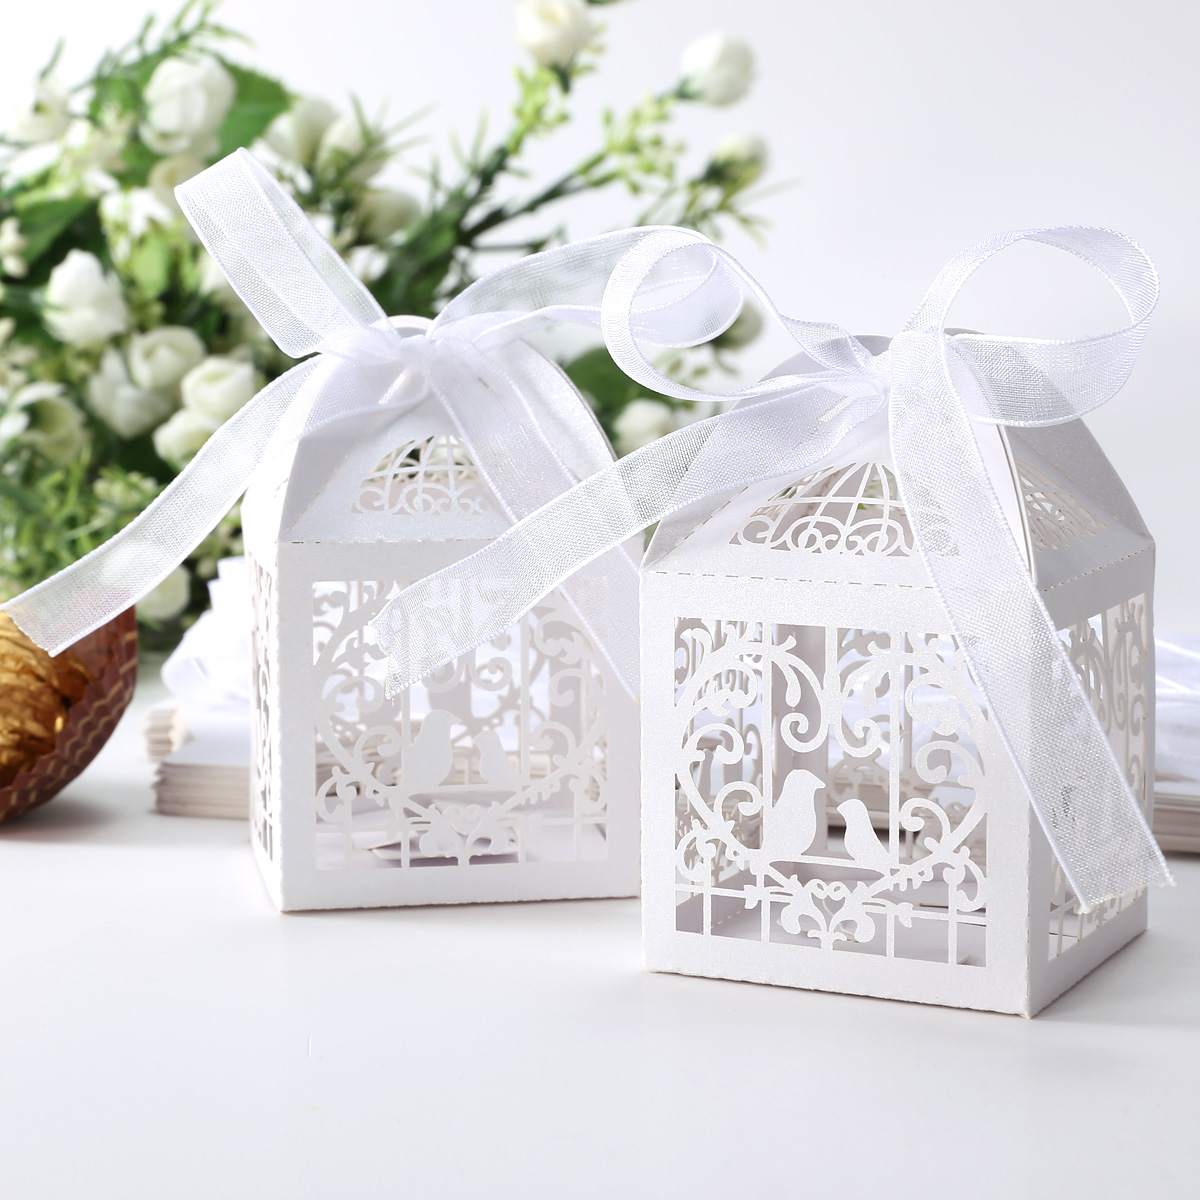 Wedding Favor Boxes: 25PCS Wedding Laser Cut Favor Boxes Hollow Cut Love Birds